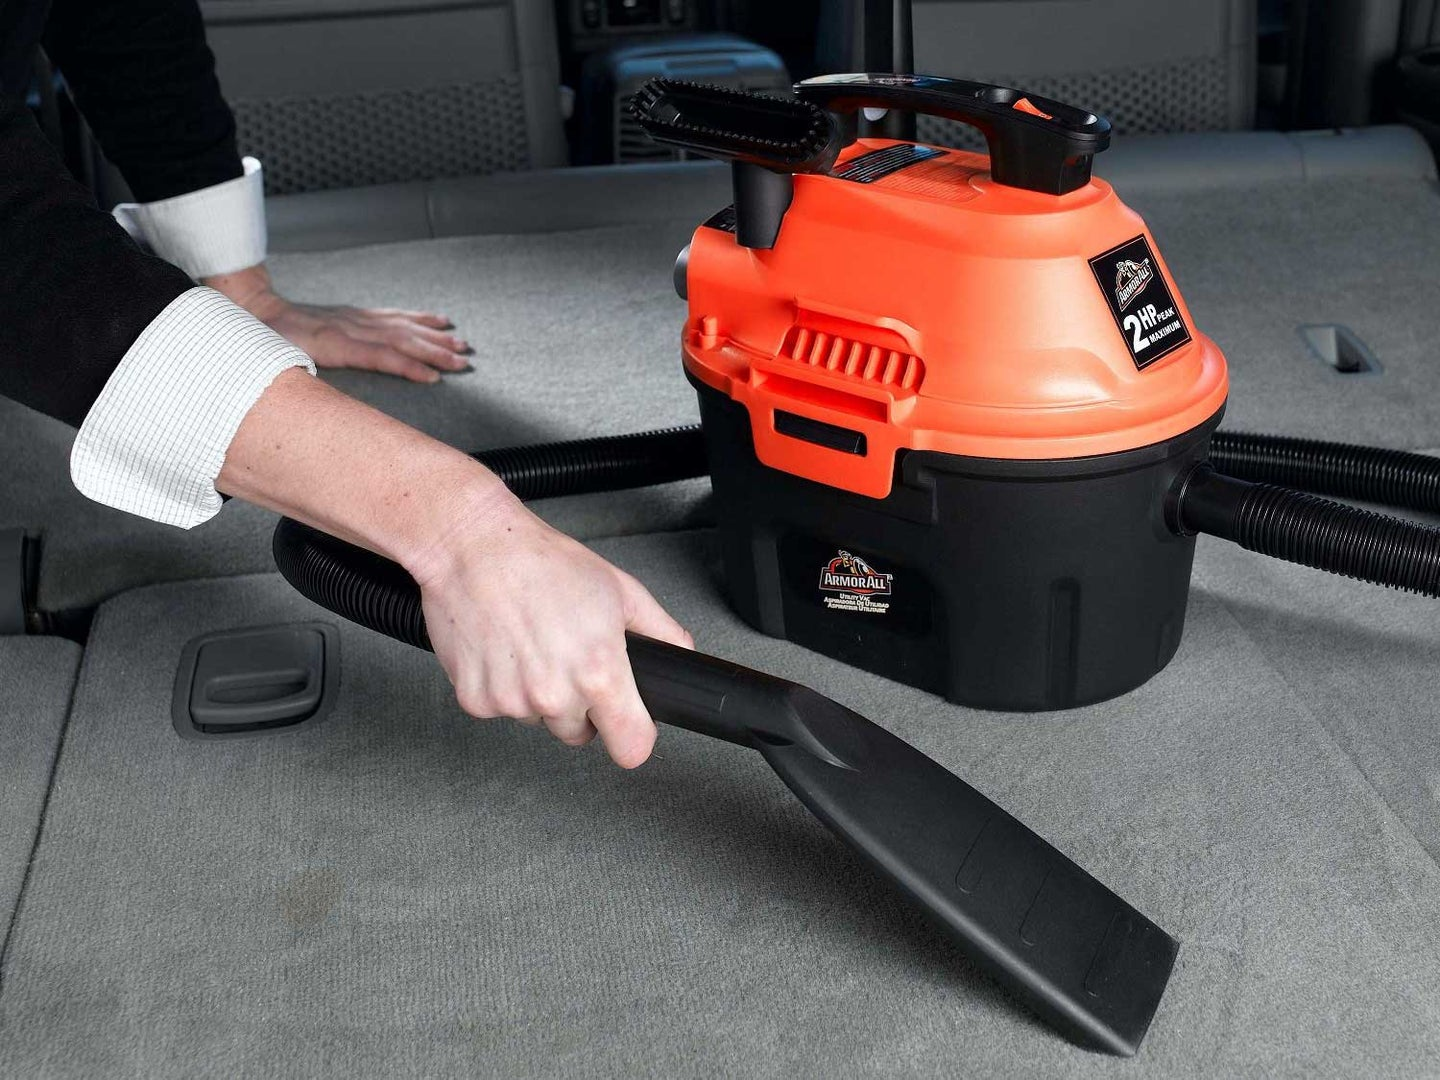 Vacuuming the inside of a car with a portable vacuum.